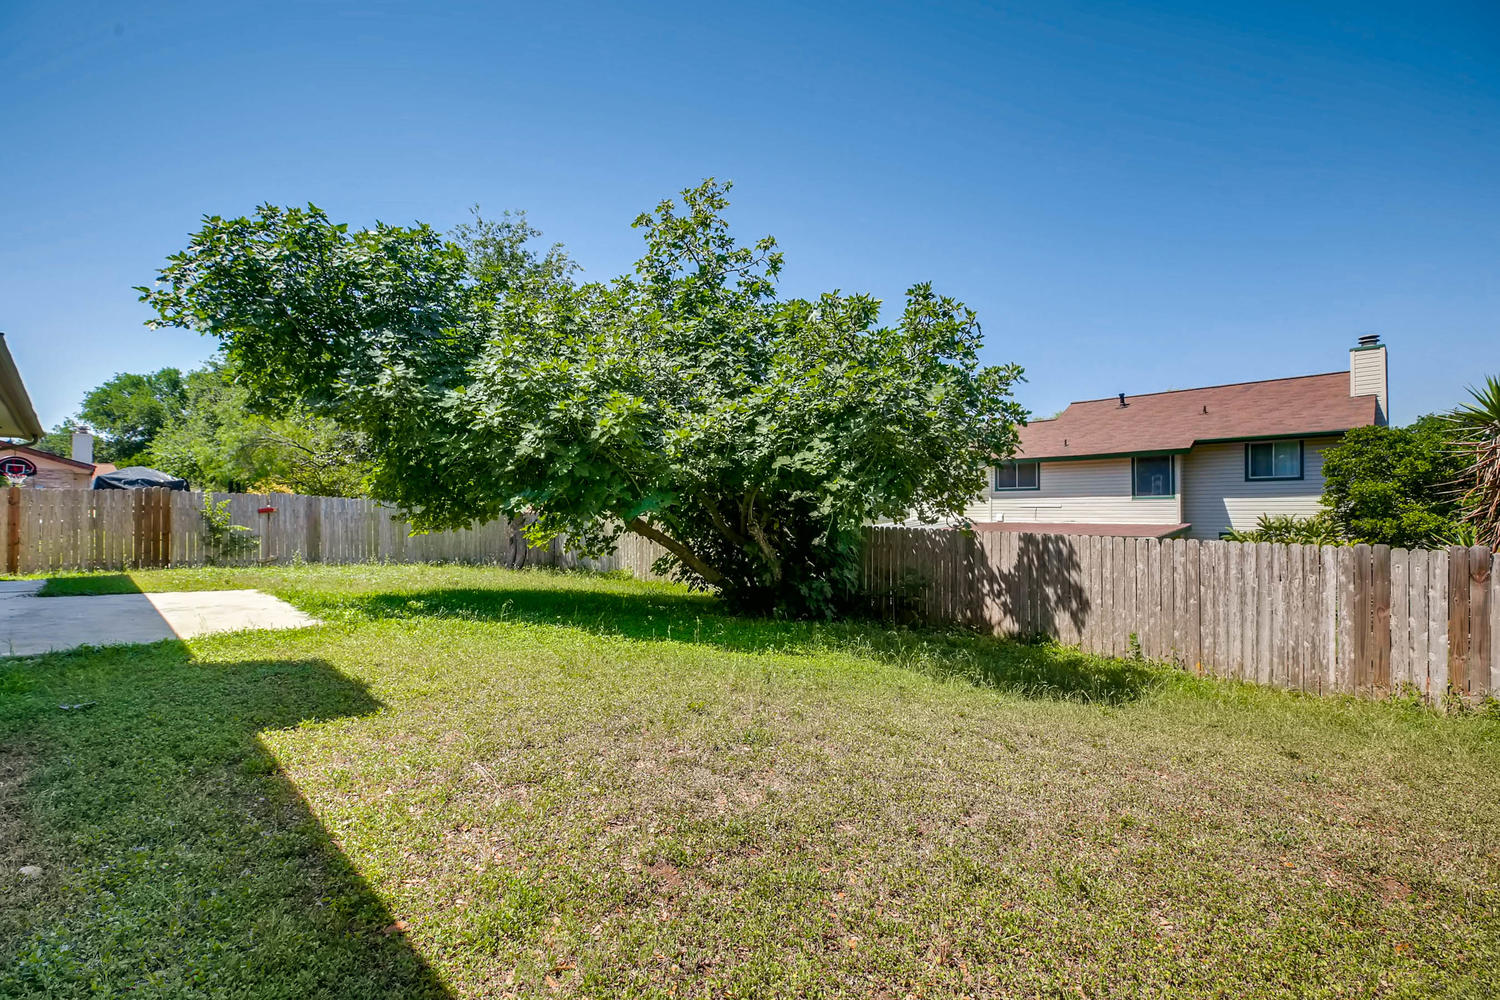 Photo of 5119 Timber Trace St, San Antonio, TX, 78250